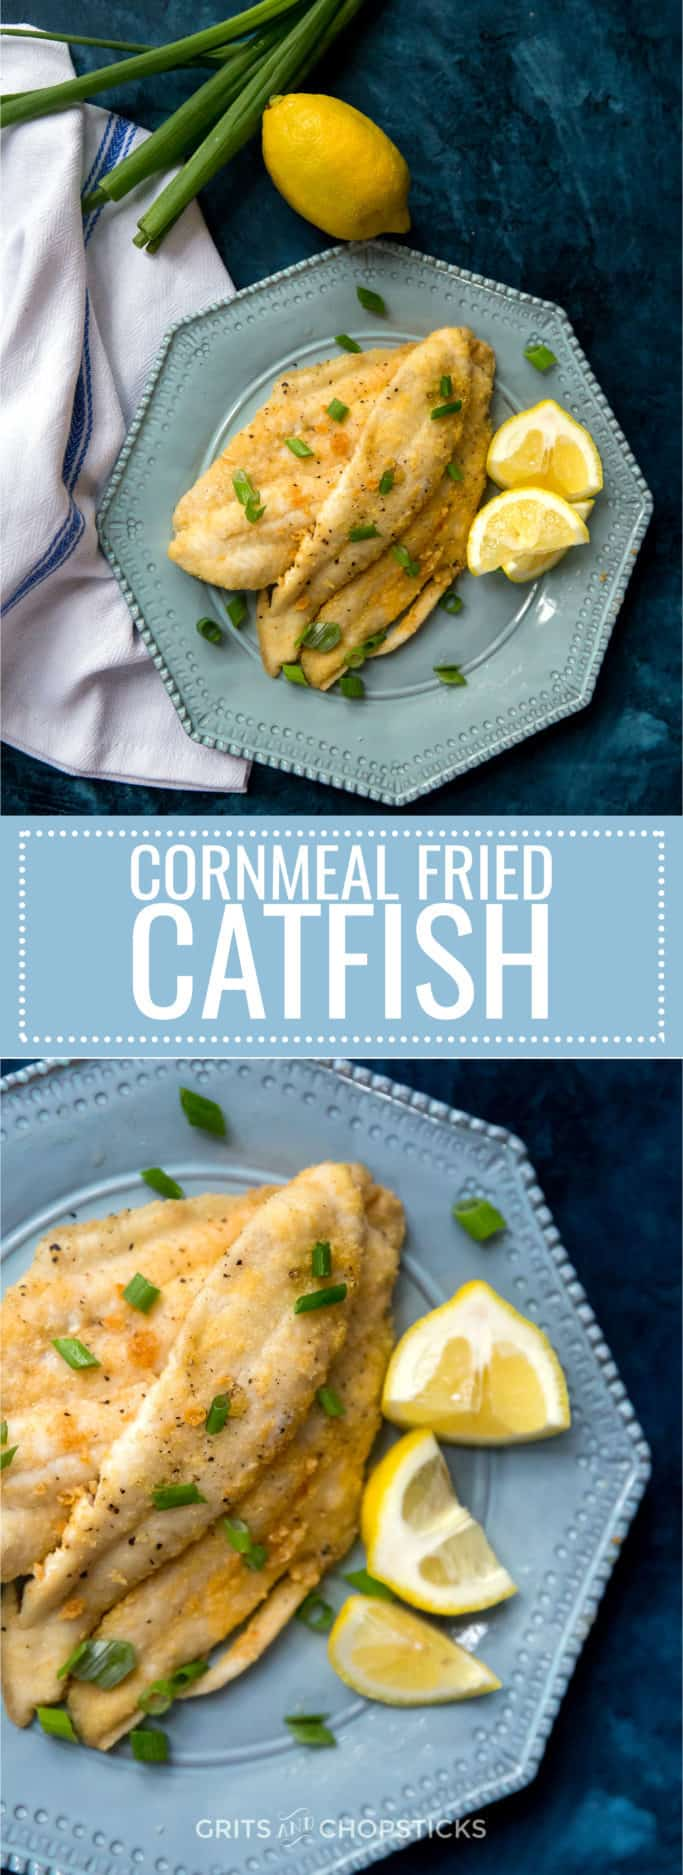 Try this cornmeal fried catfish for a good Southern weeknight meal